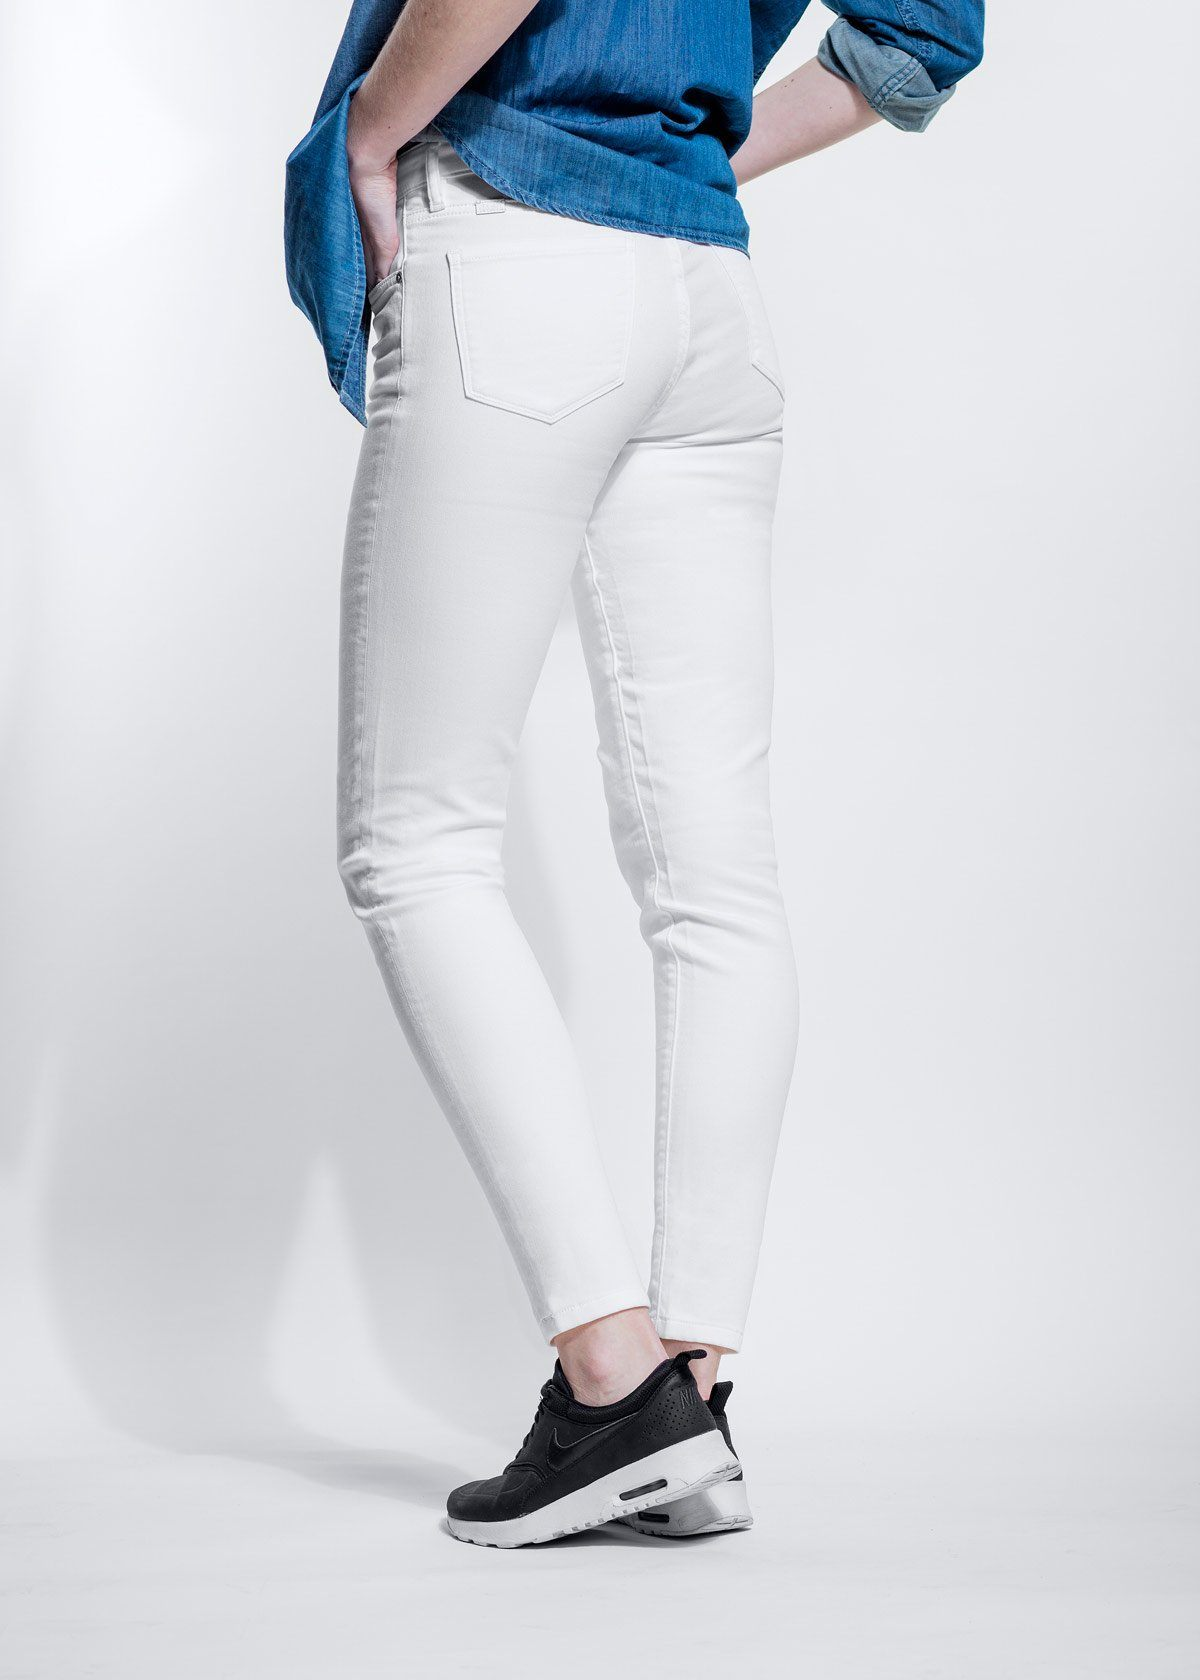 Dish by DUER Pant Skinny - White